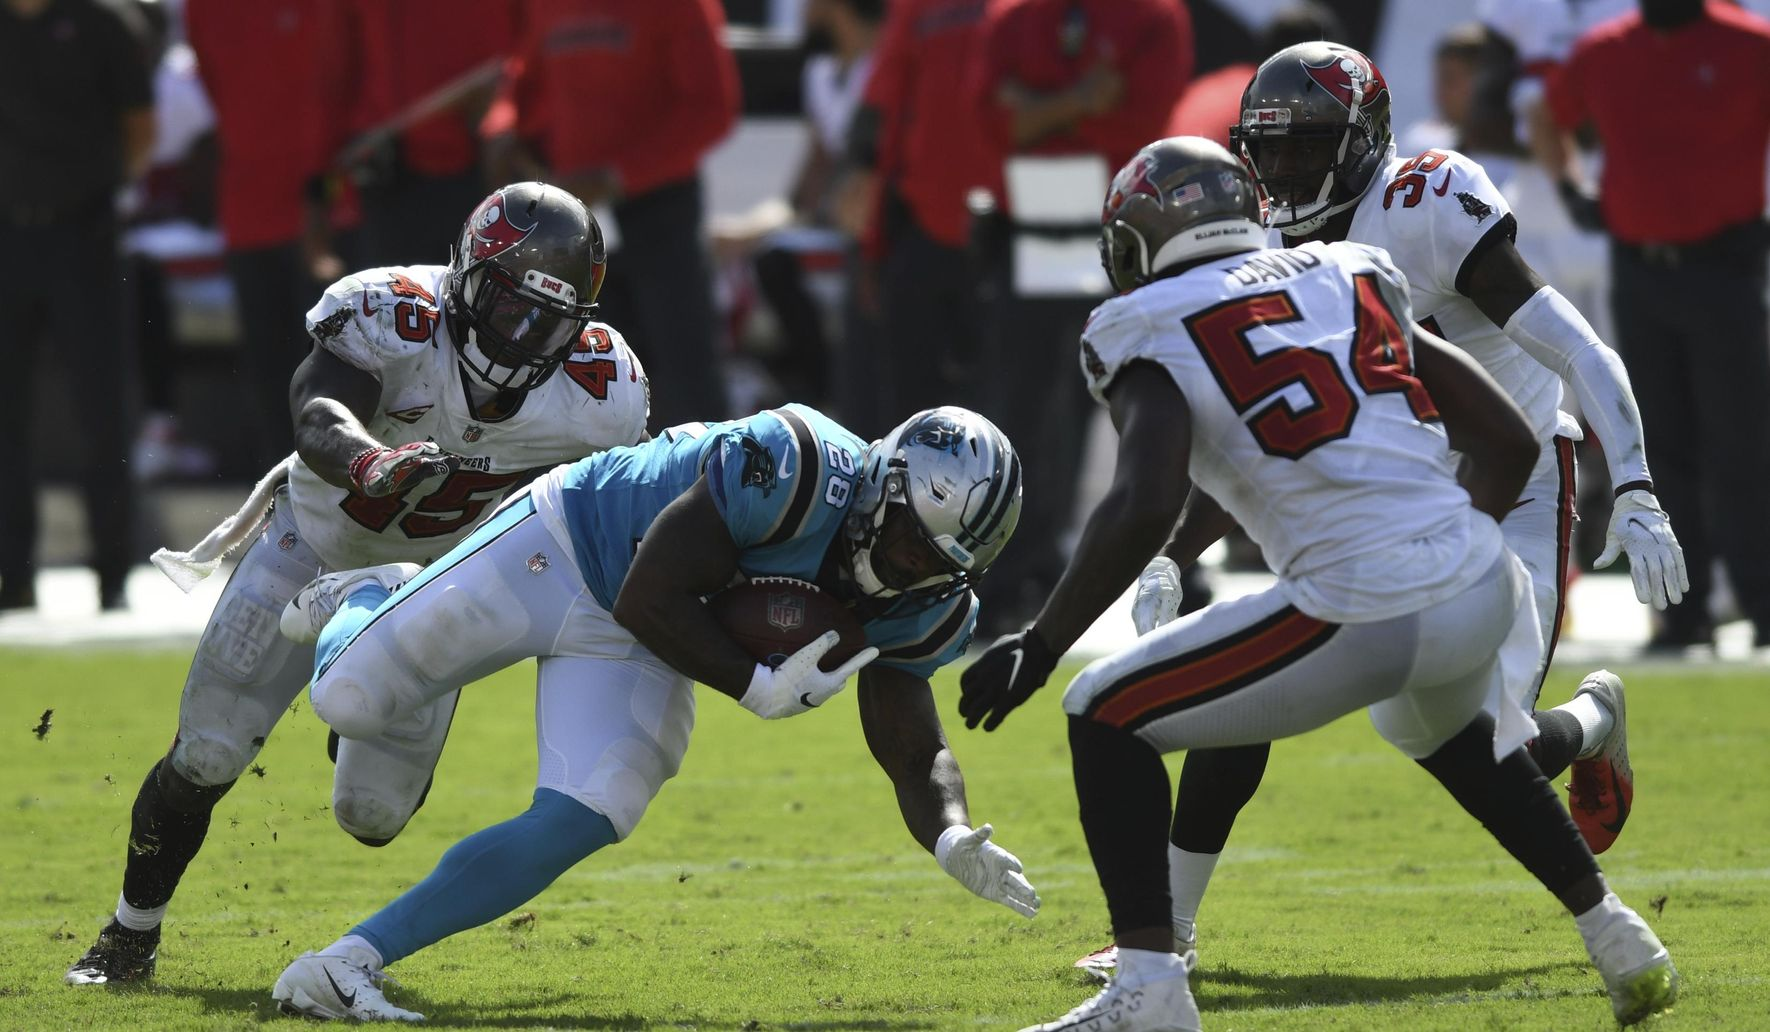 Panthers_buccaneers_football_51226_c0-152-3300-2076_s1770x1032